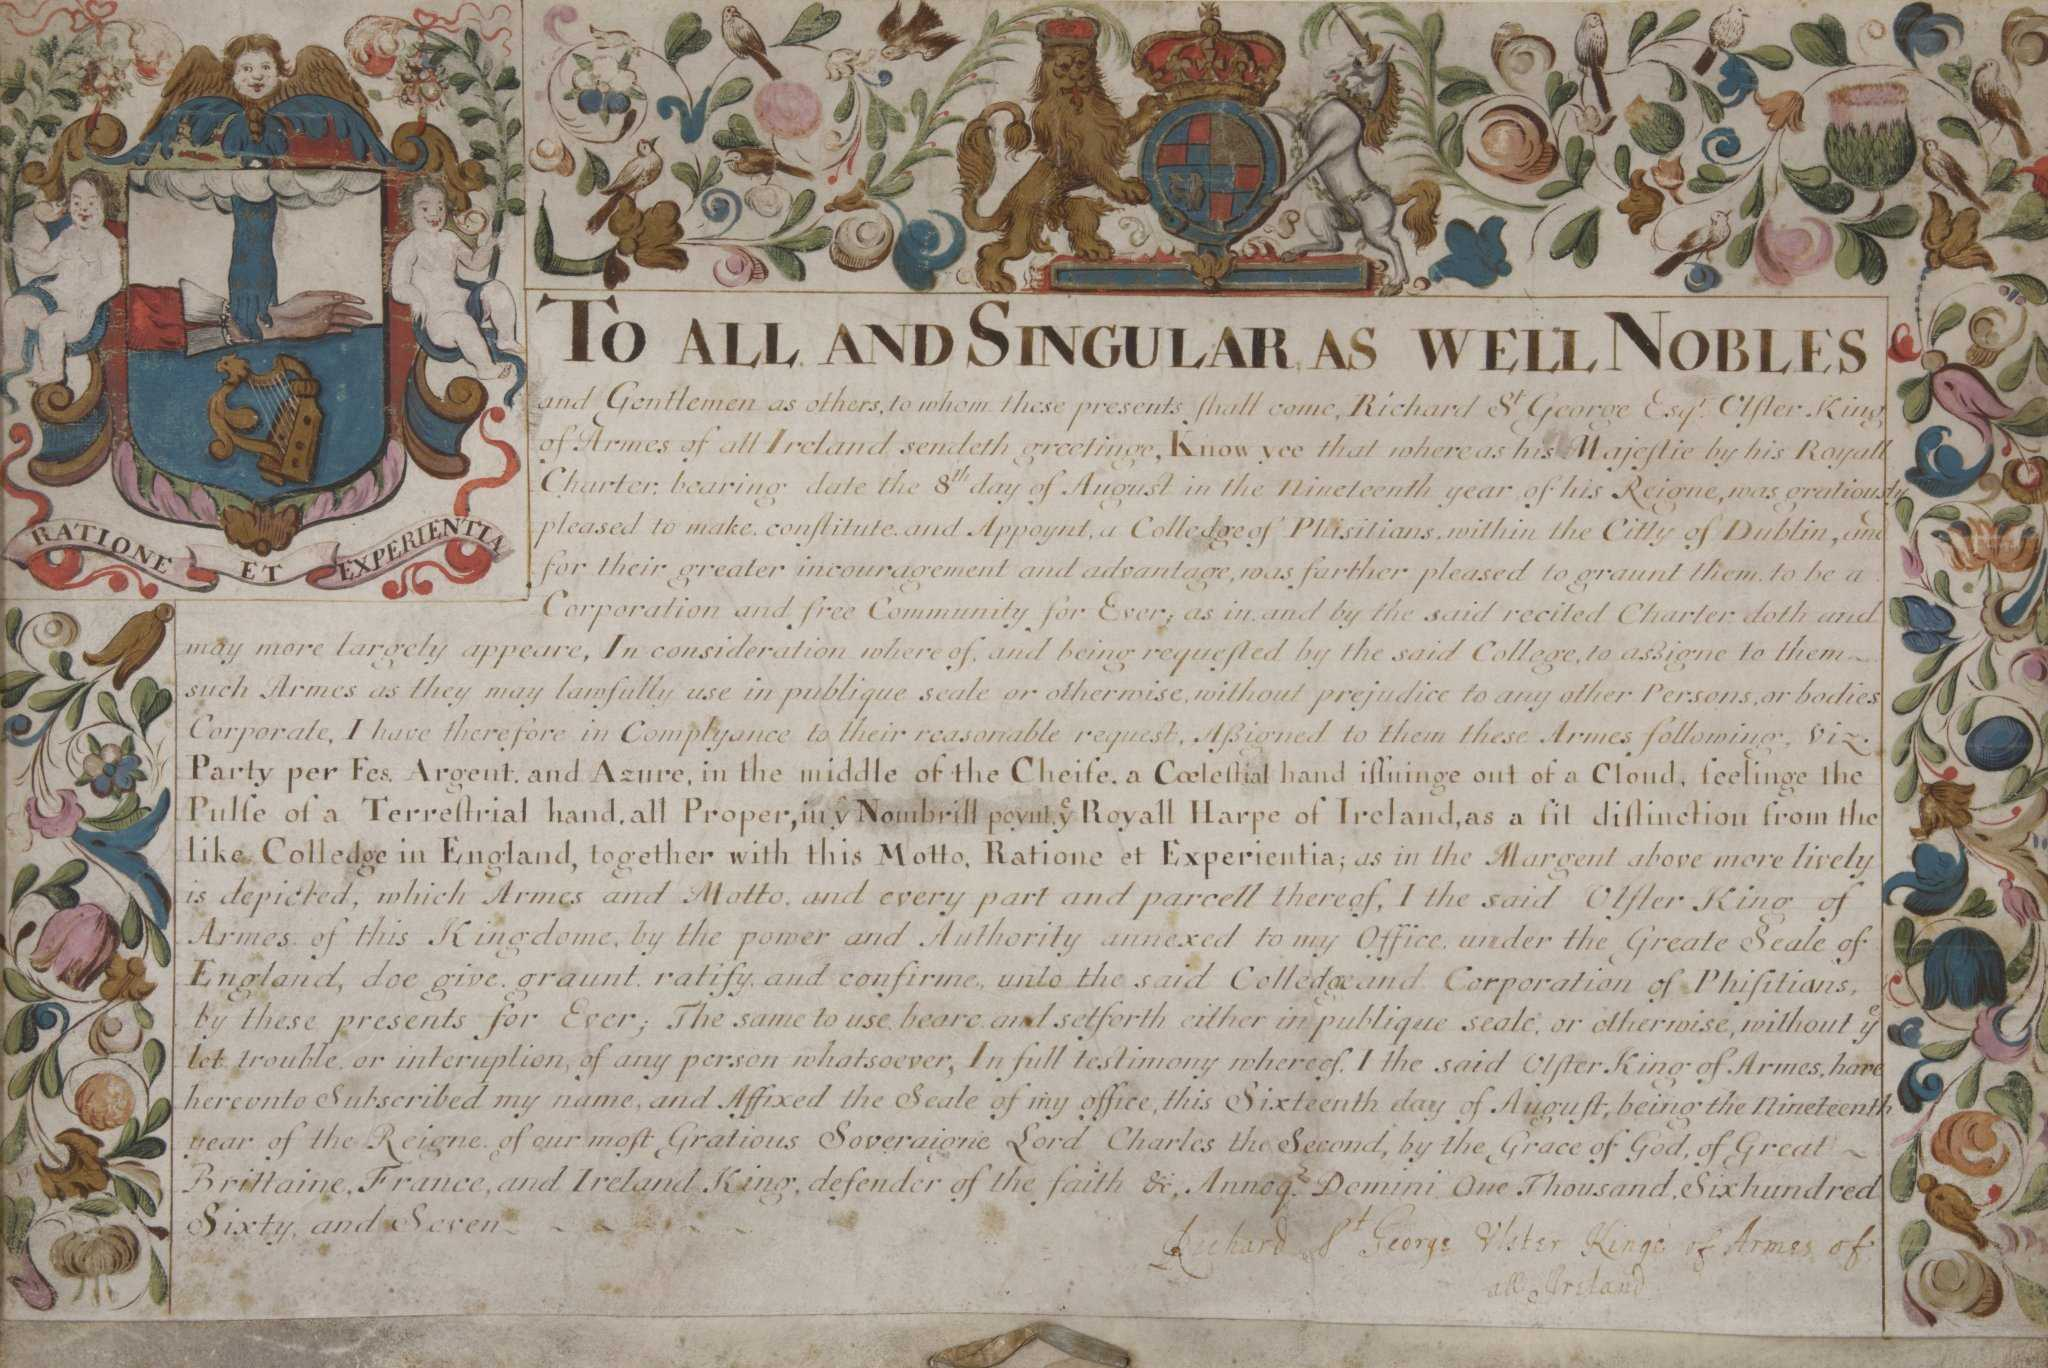 Grant of arms cropped